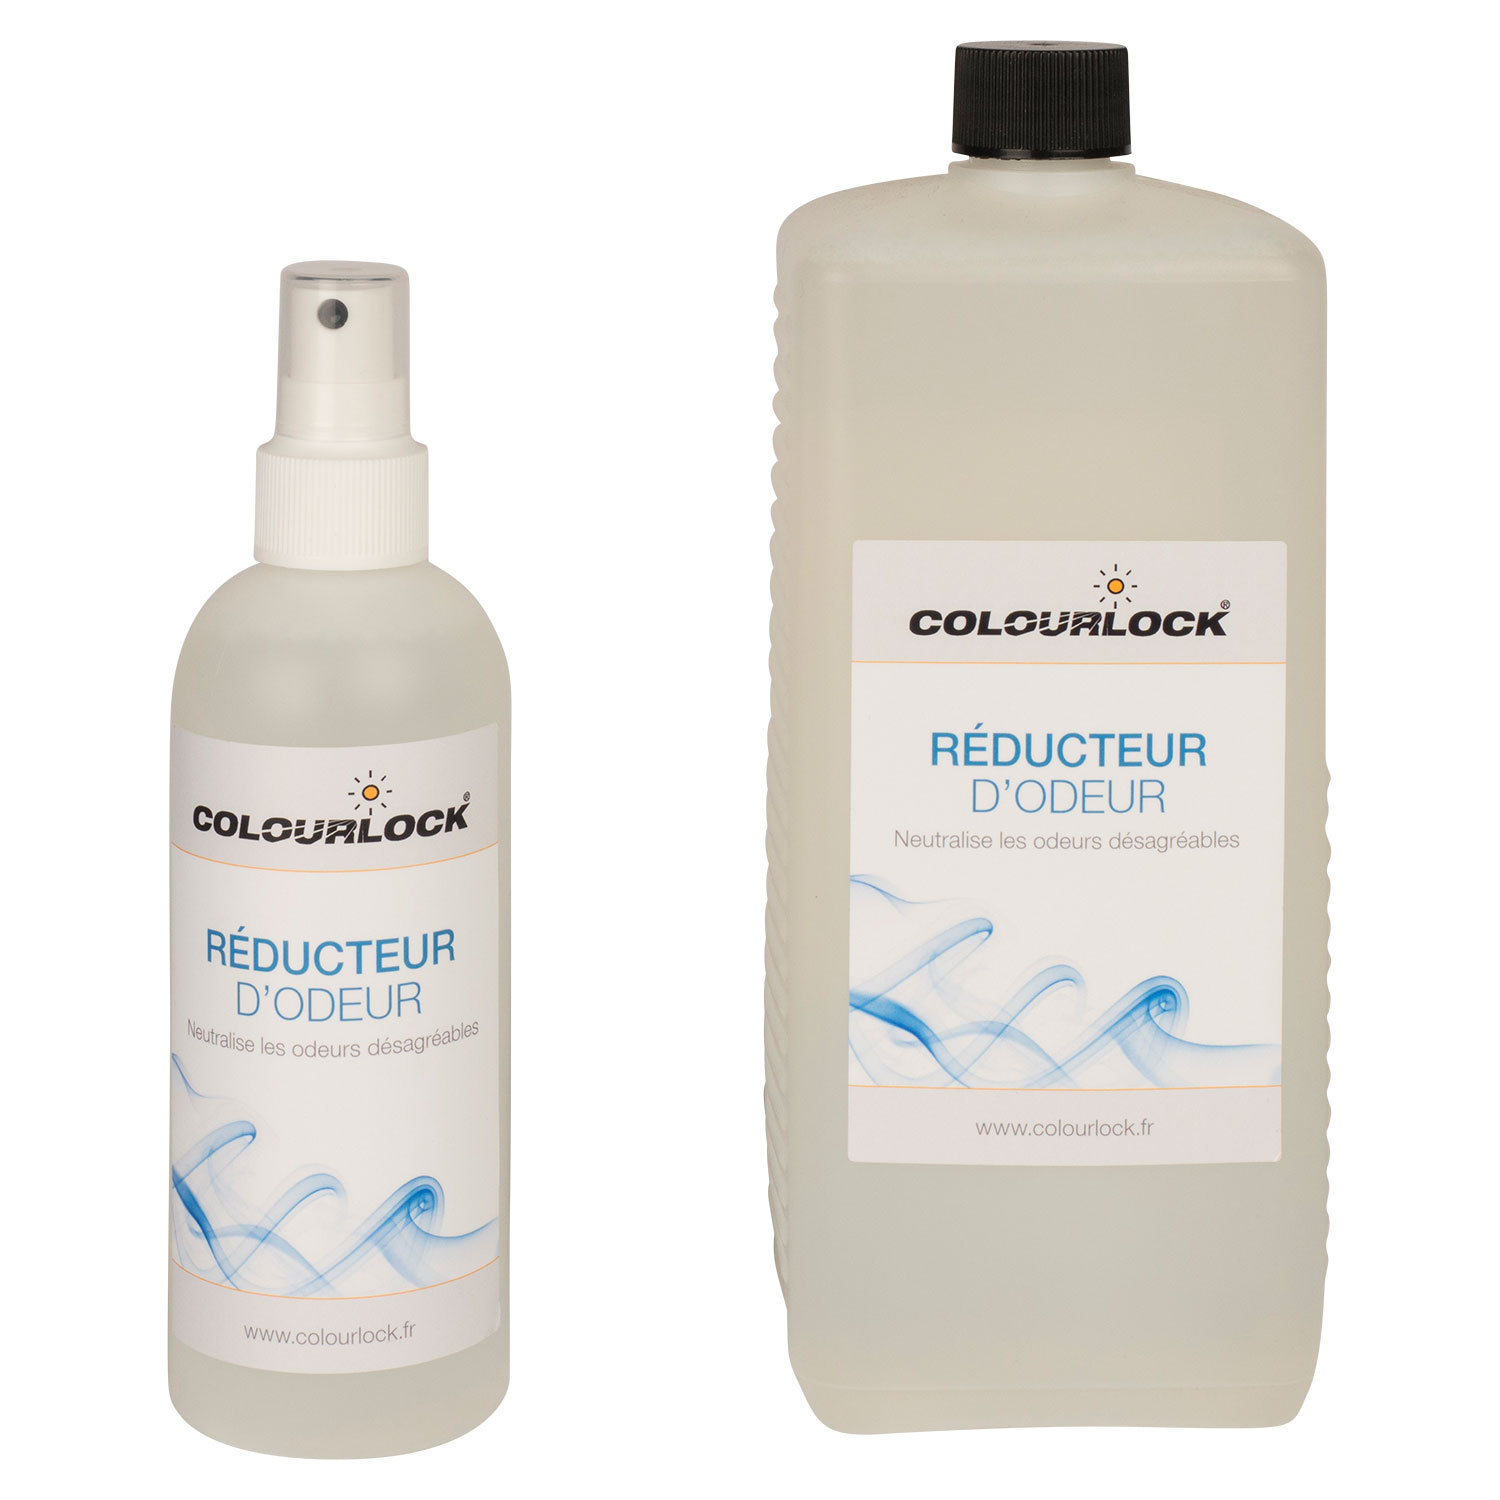 Reducteur d'odeur COLOURLOCK, 250 ml